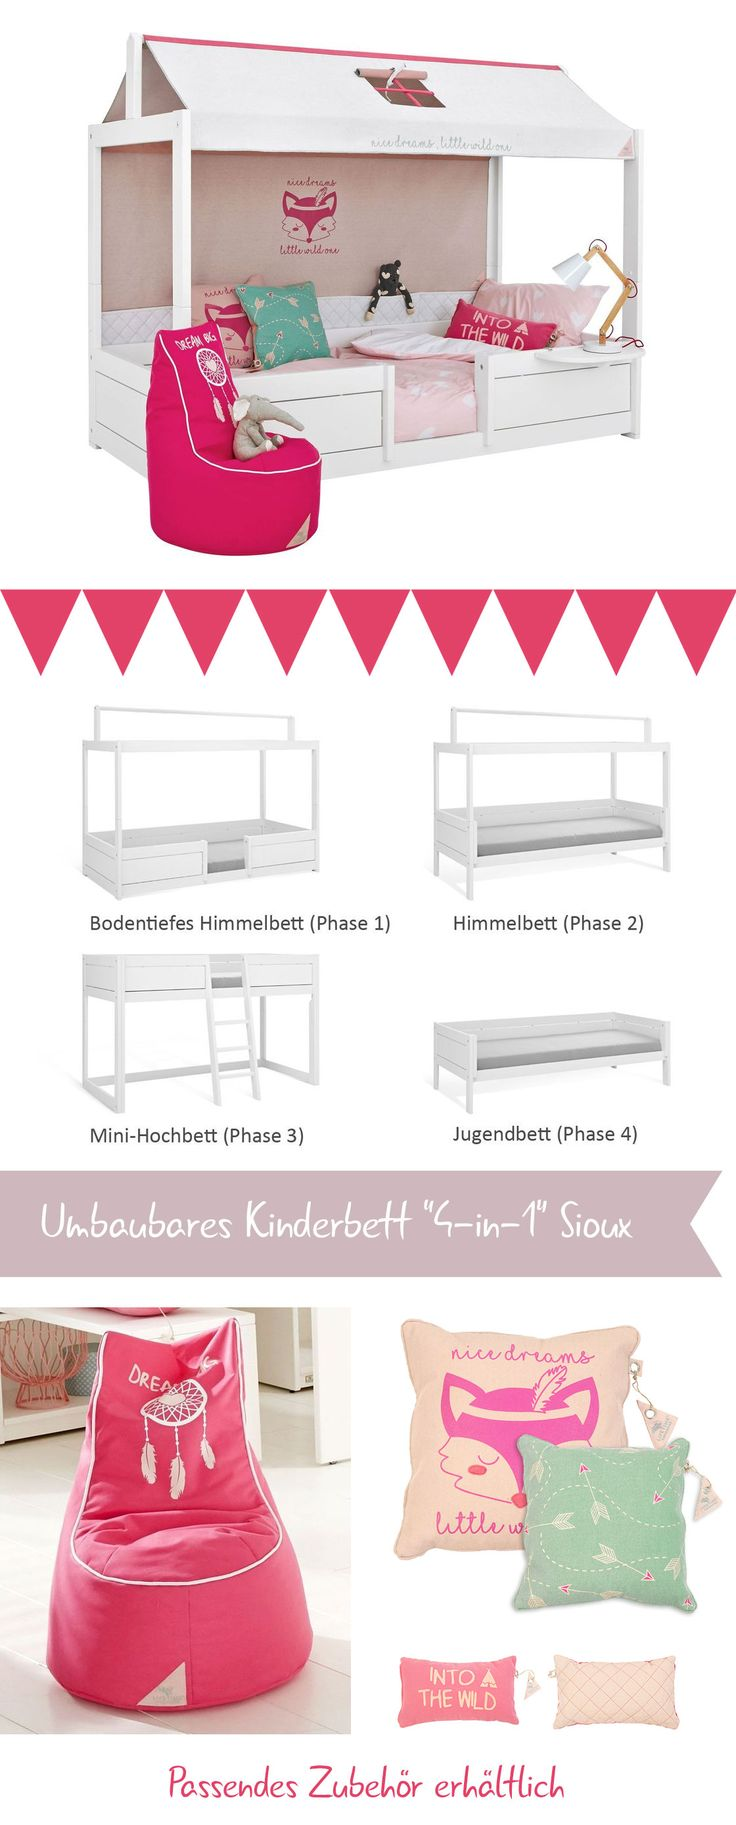 die besten 25 kinderbett 90x200 ideen auf pinterest bett 90x200 babyzimmer massivholz und. Black Bedroom Furniture Sets. Home Design Ideas